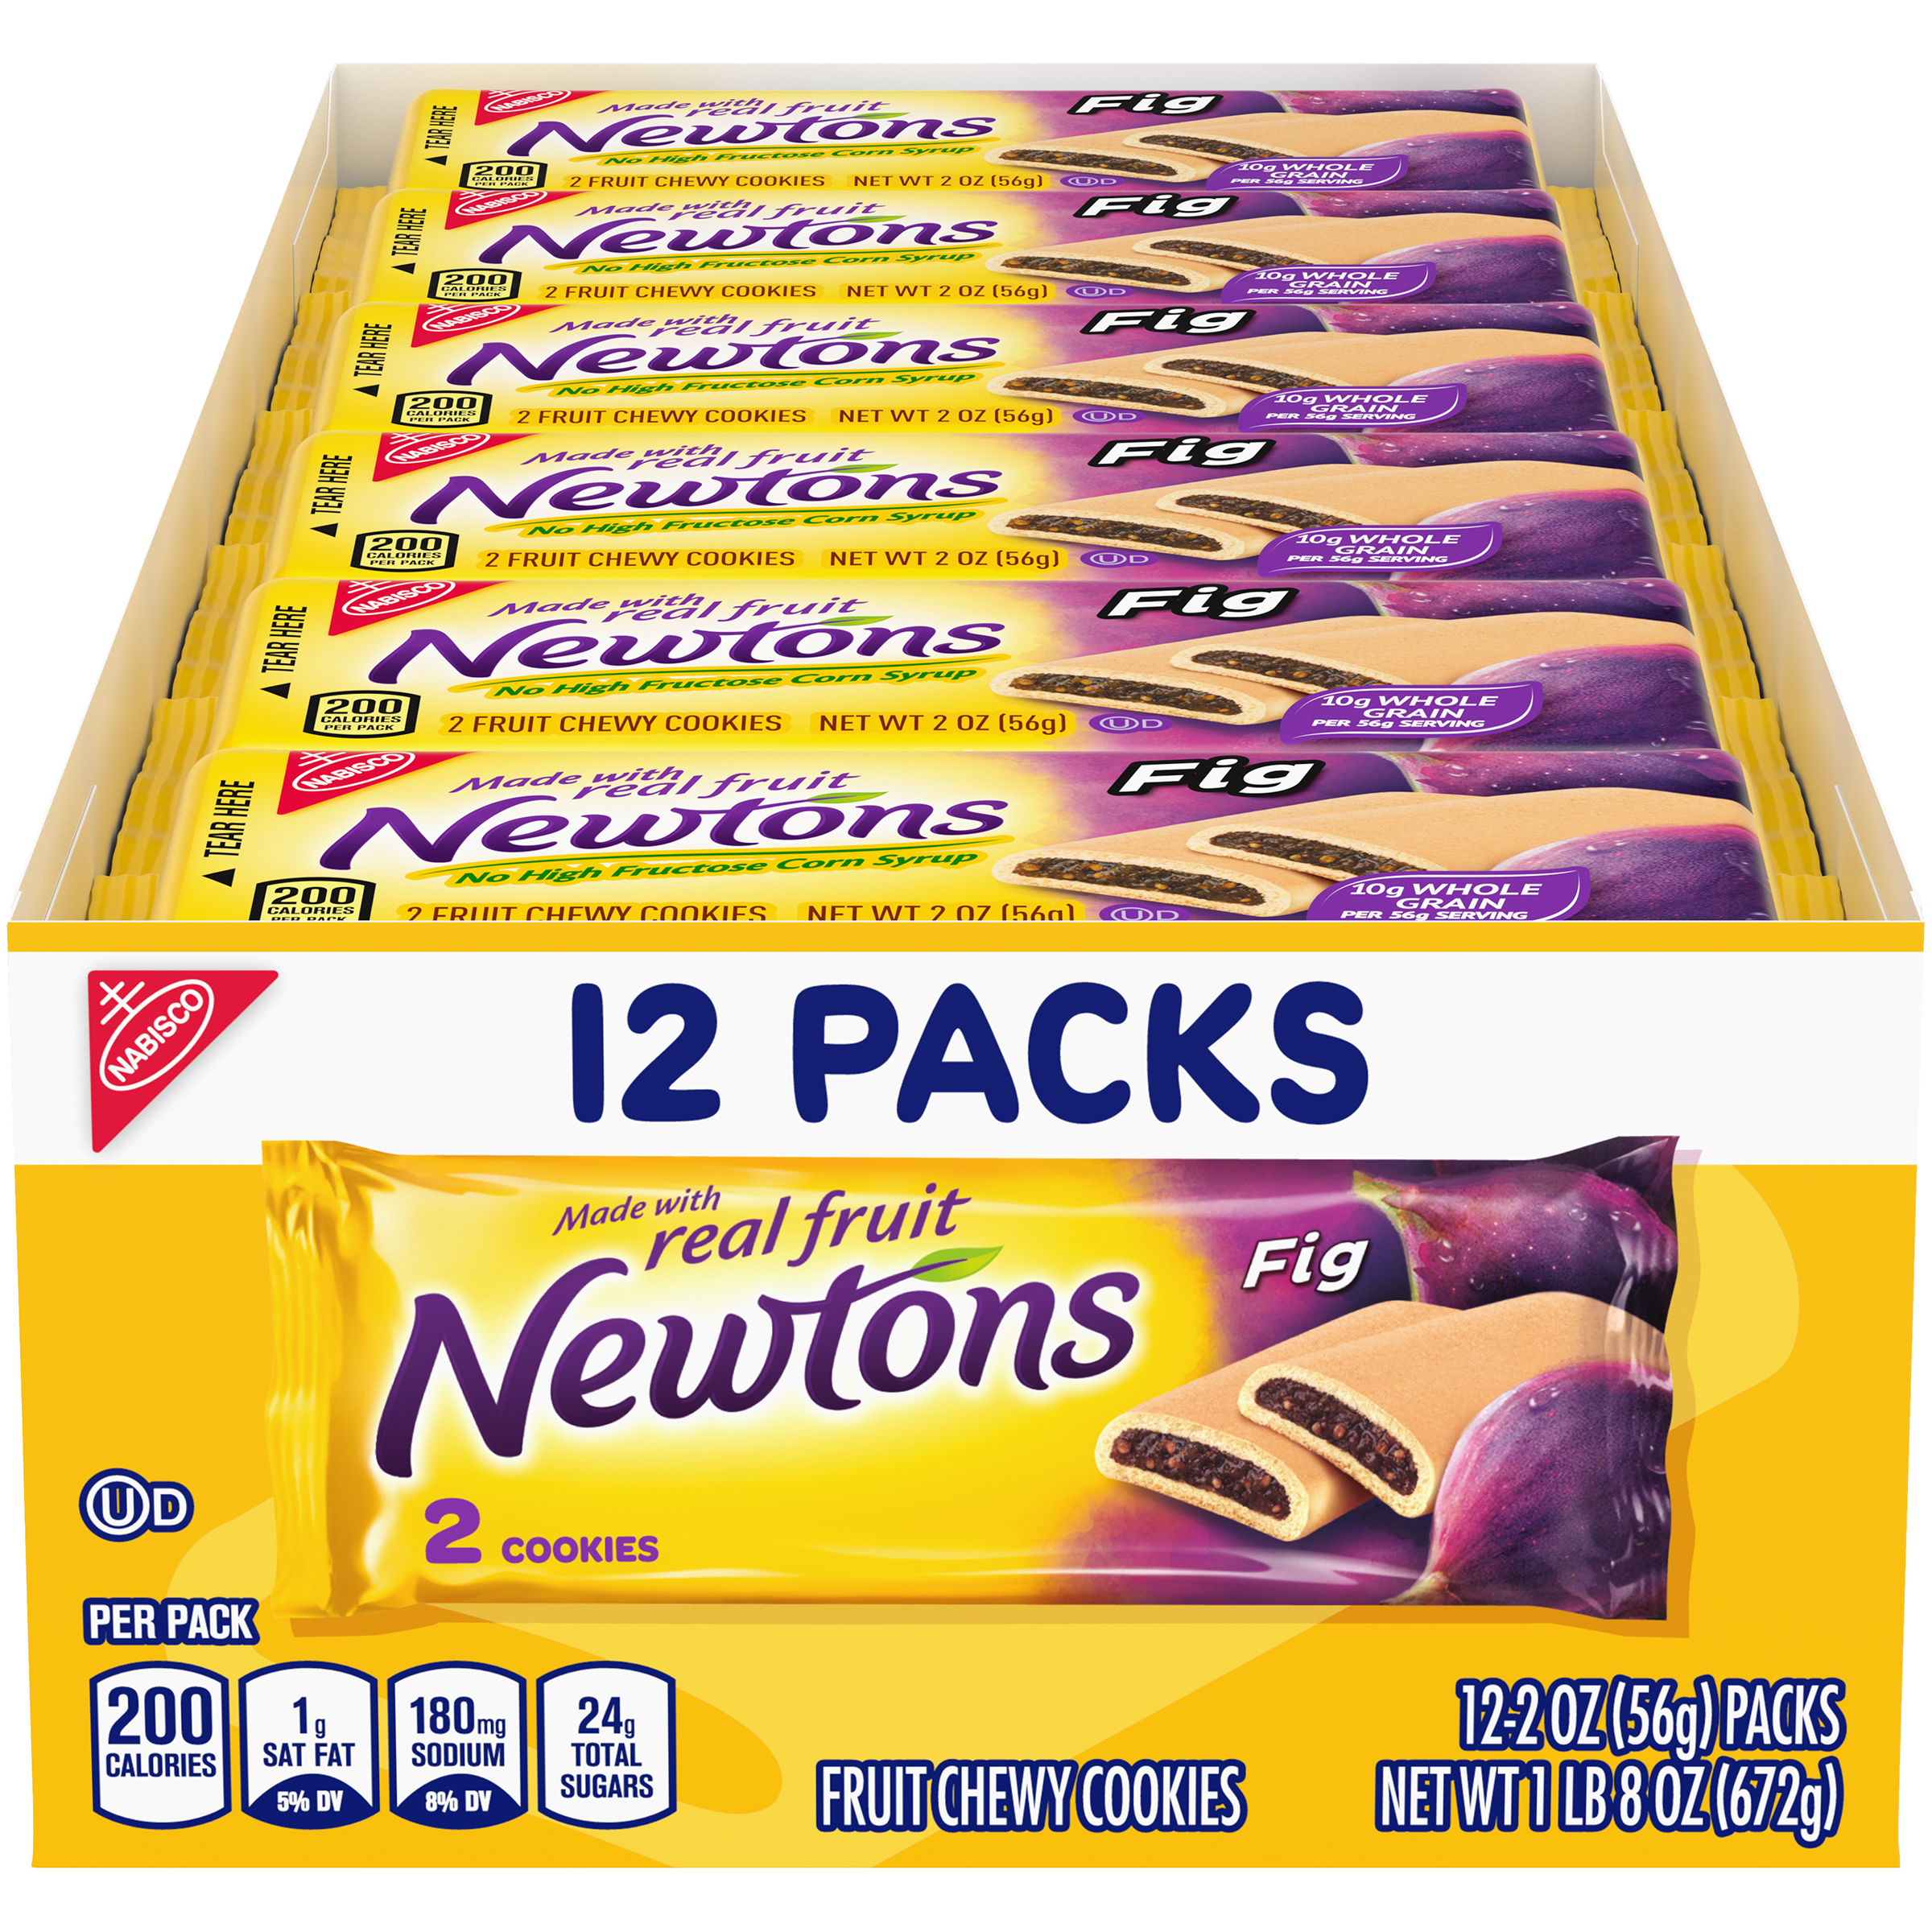 NEWTONS Fig Lunchbox Cookies 1.5 lb